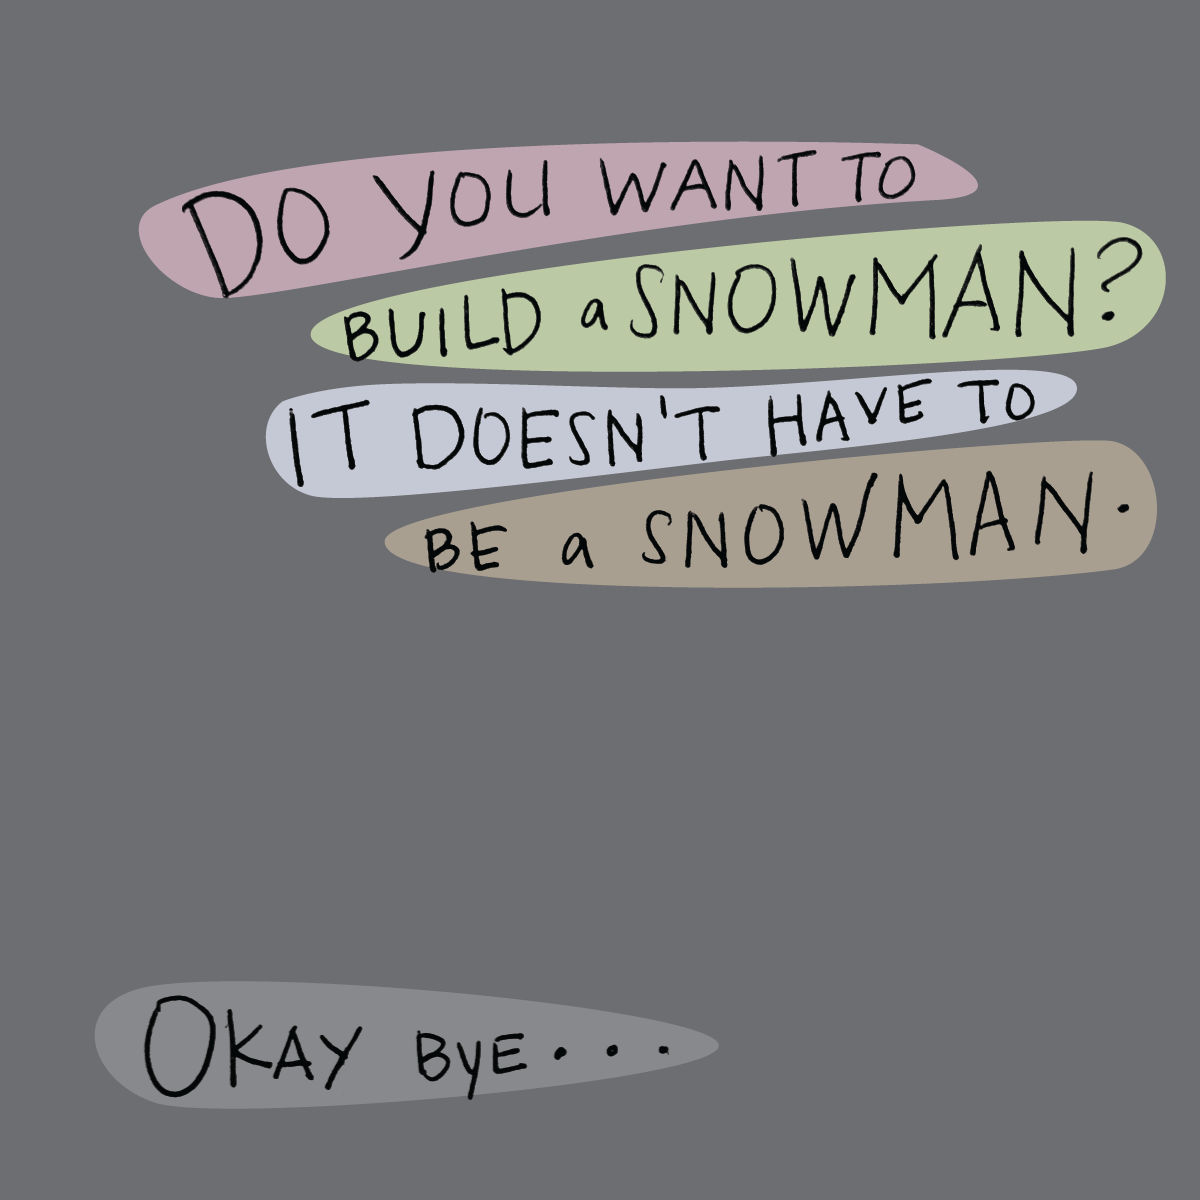 day-63-build-a-snowman.png